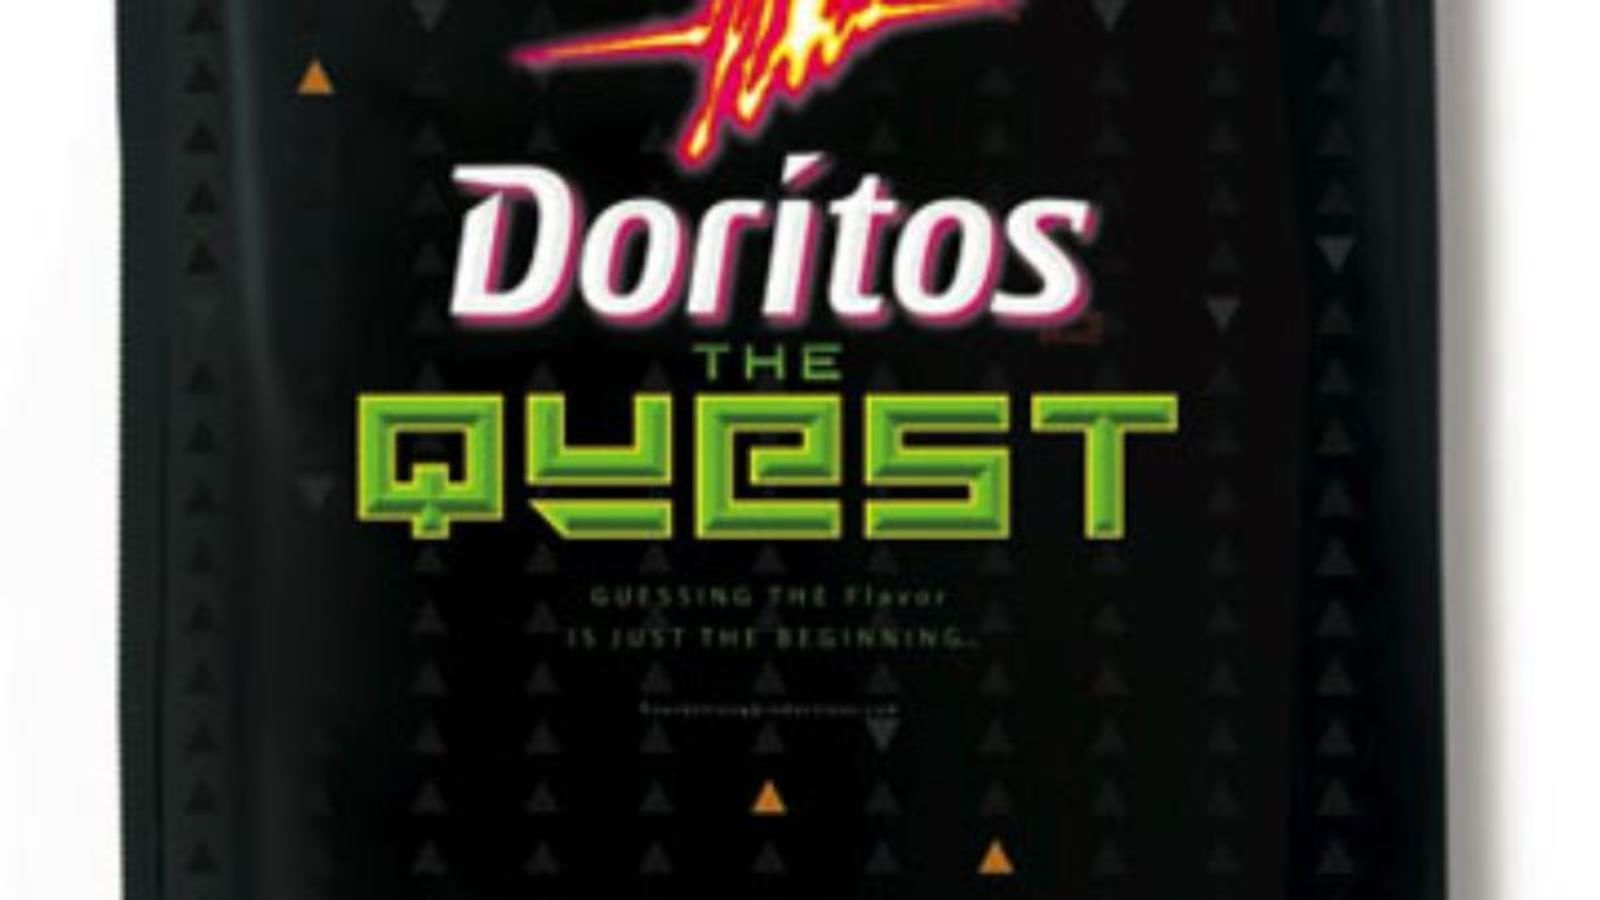 quest-doritos Cropped